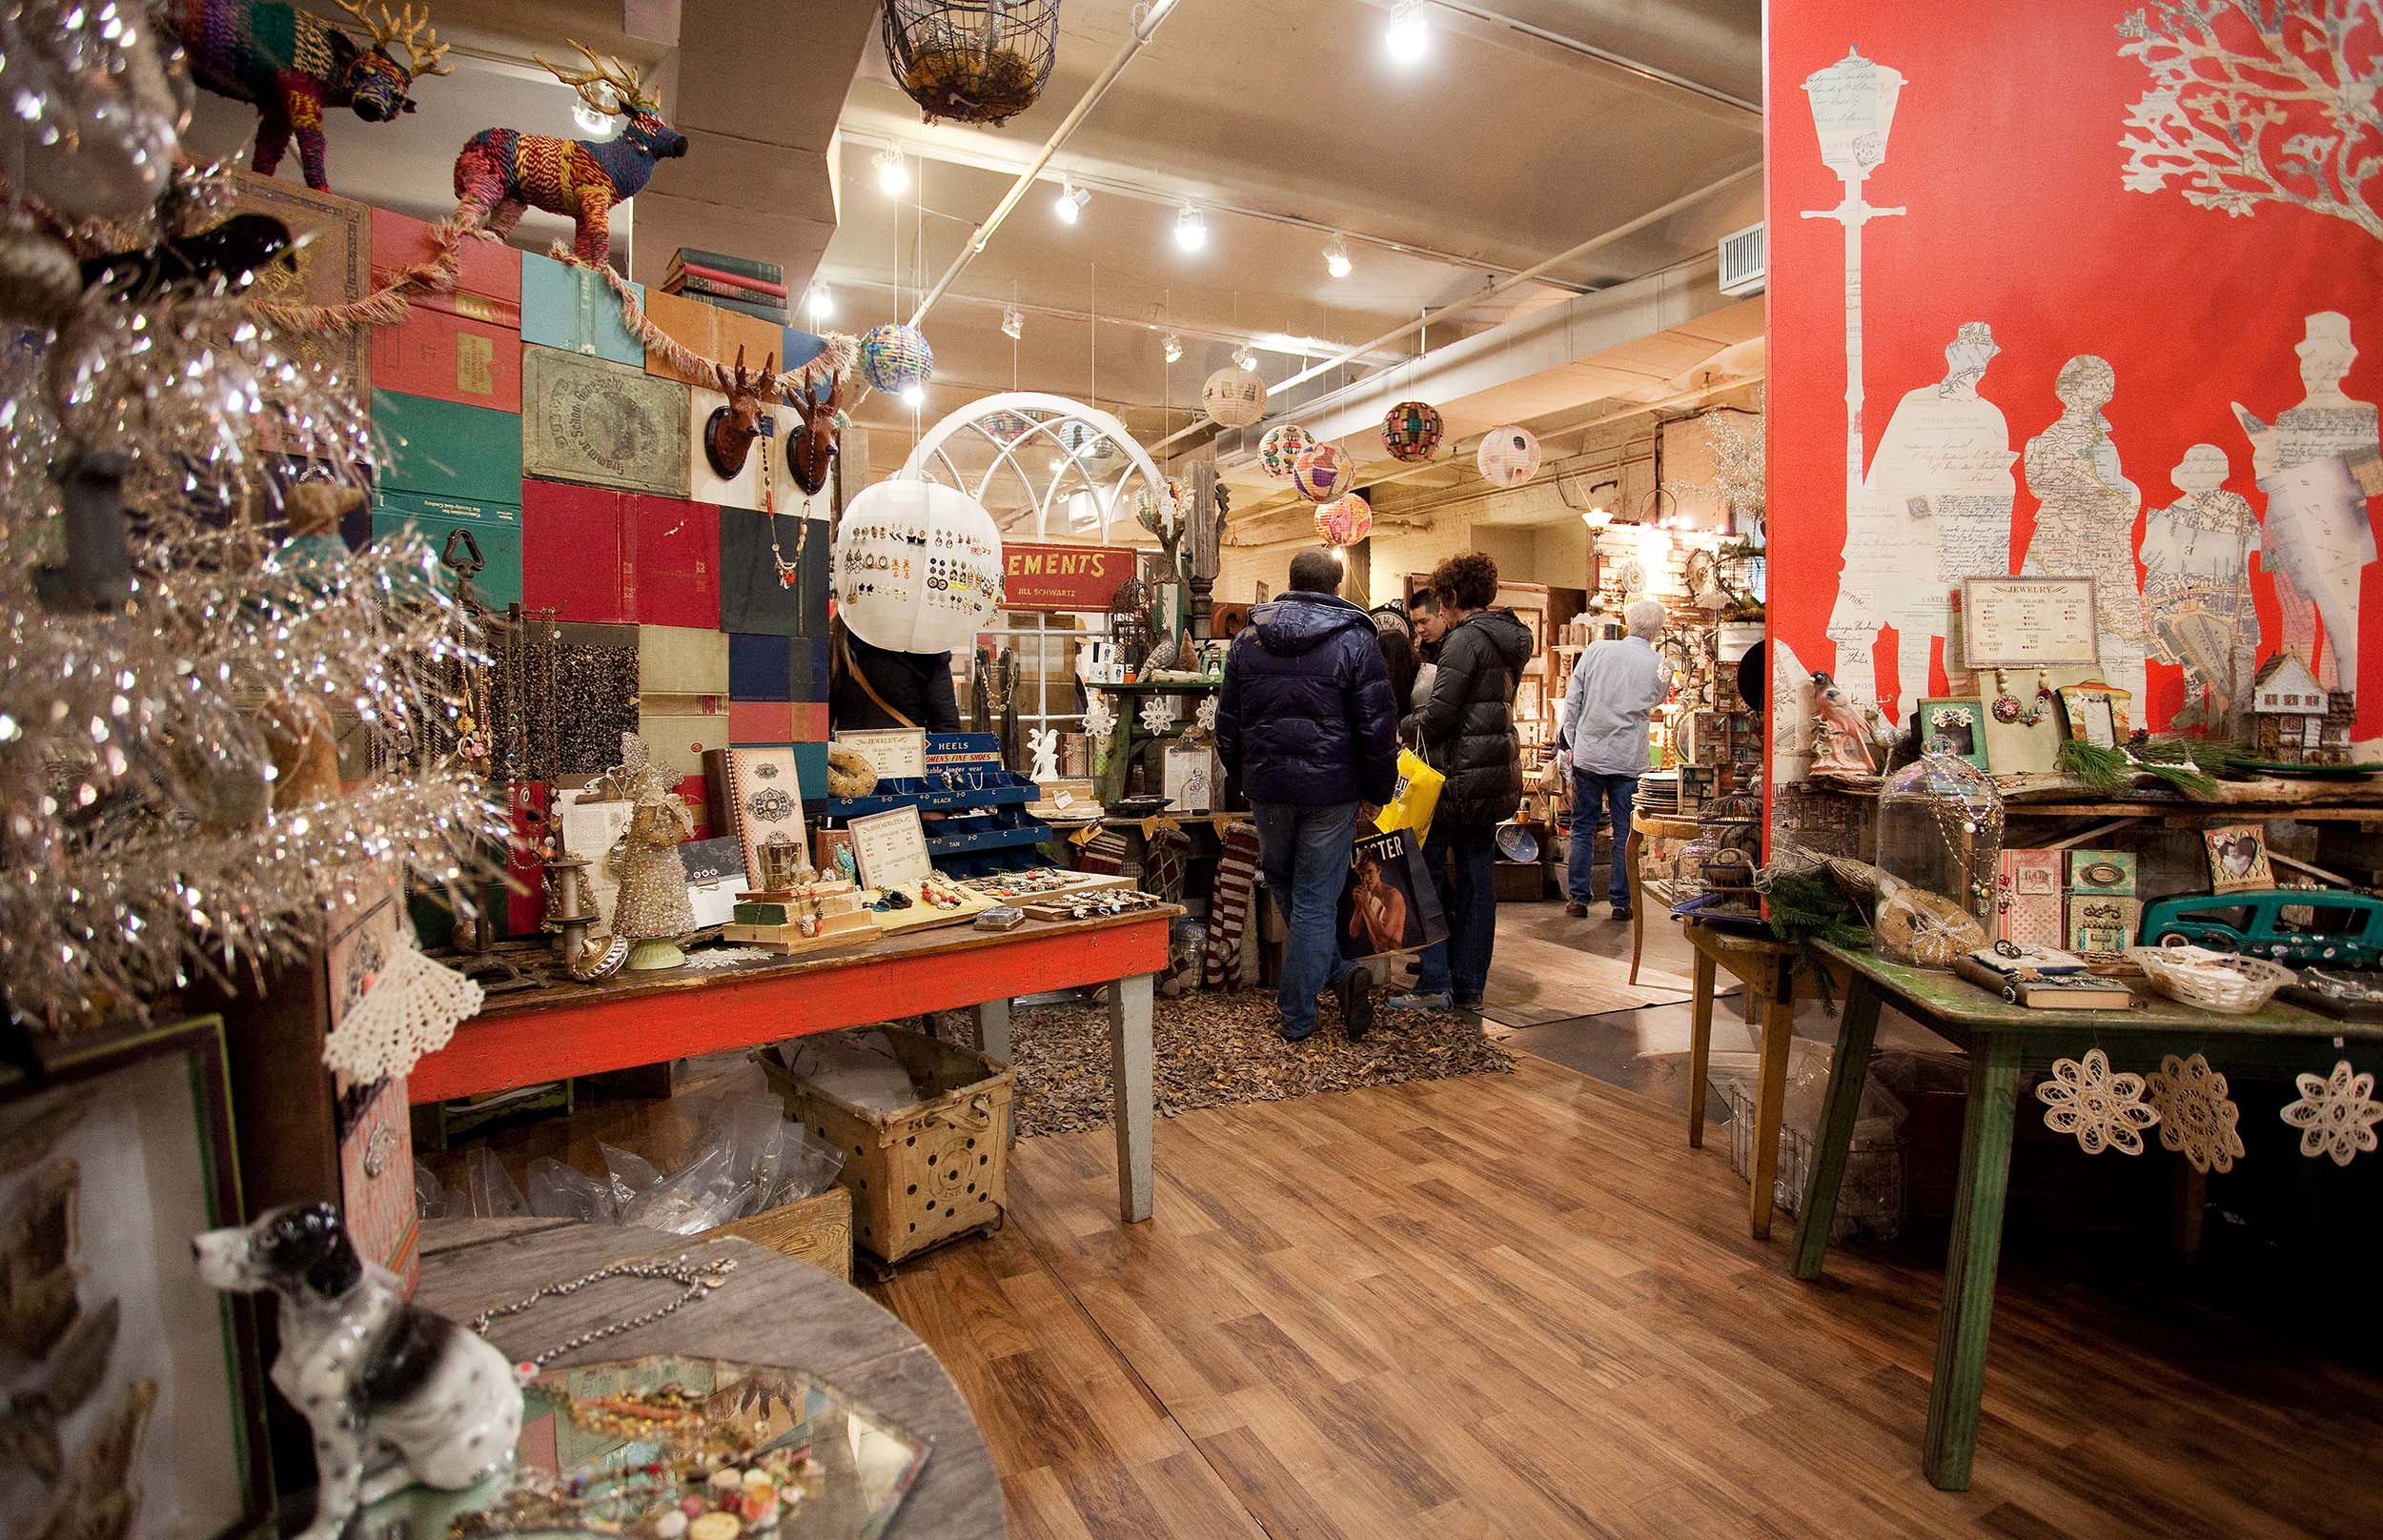 ANNUAL HOLIDAY POP-UP SHOP 'JINGLE' TO OPEN AT CHELSEA MARKET